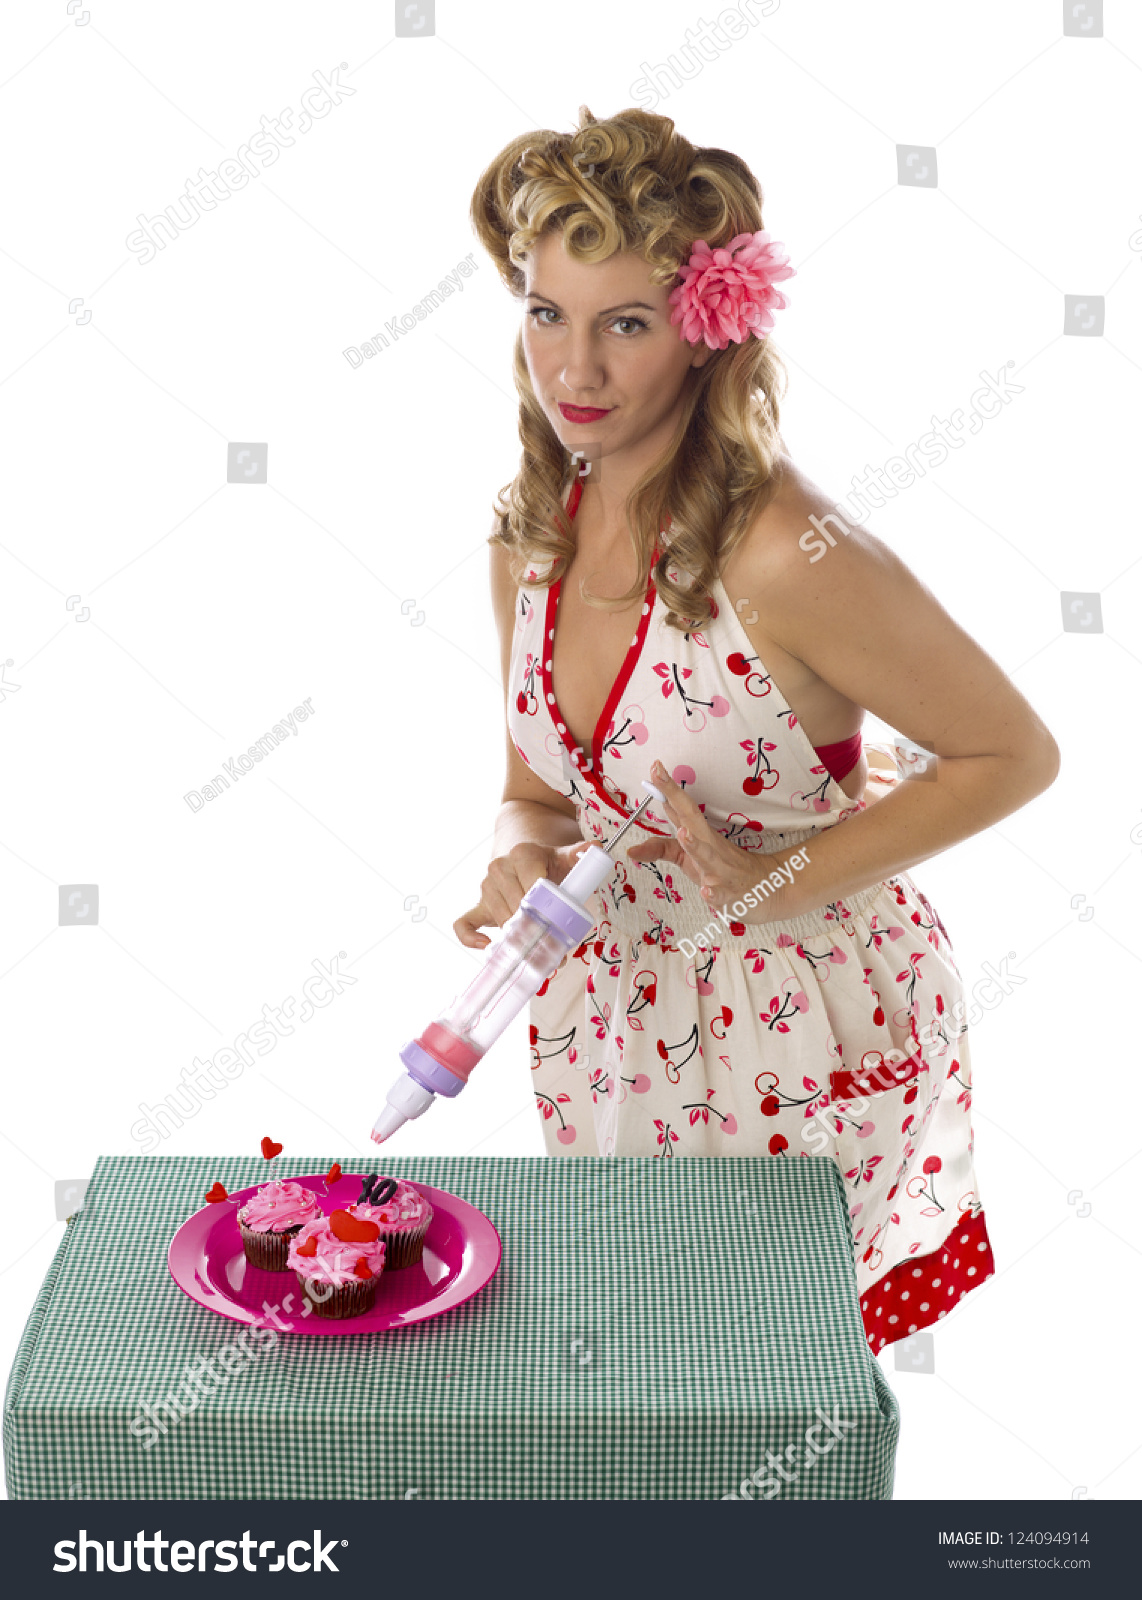 portrait of a beautiful young woman decorating cupcakes with whipped cream against white background